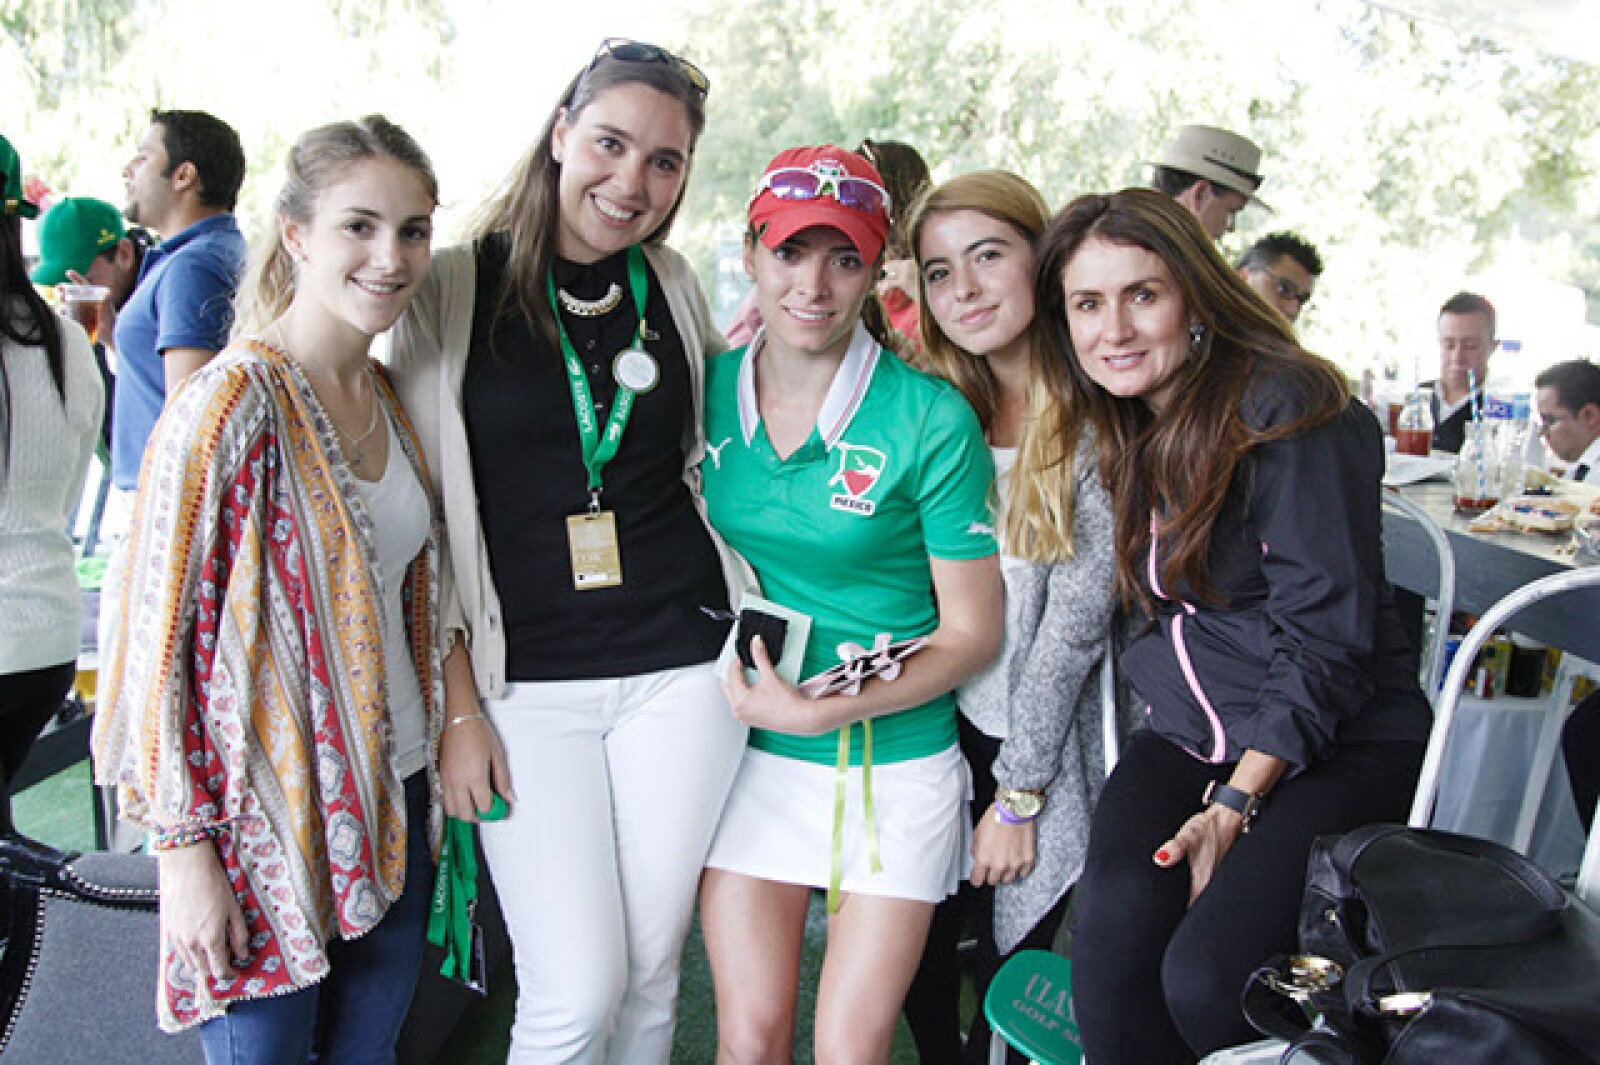 Isabel Ortega, Christiane Michel, Gabriela López, Evelyn Arguelles y Evelyn Badillo